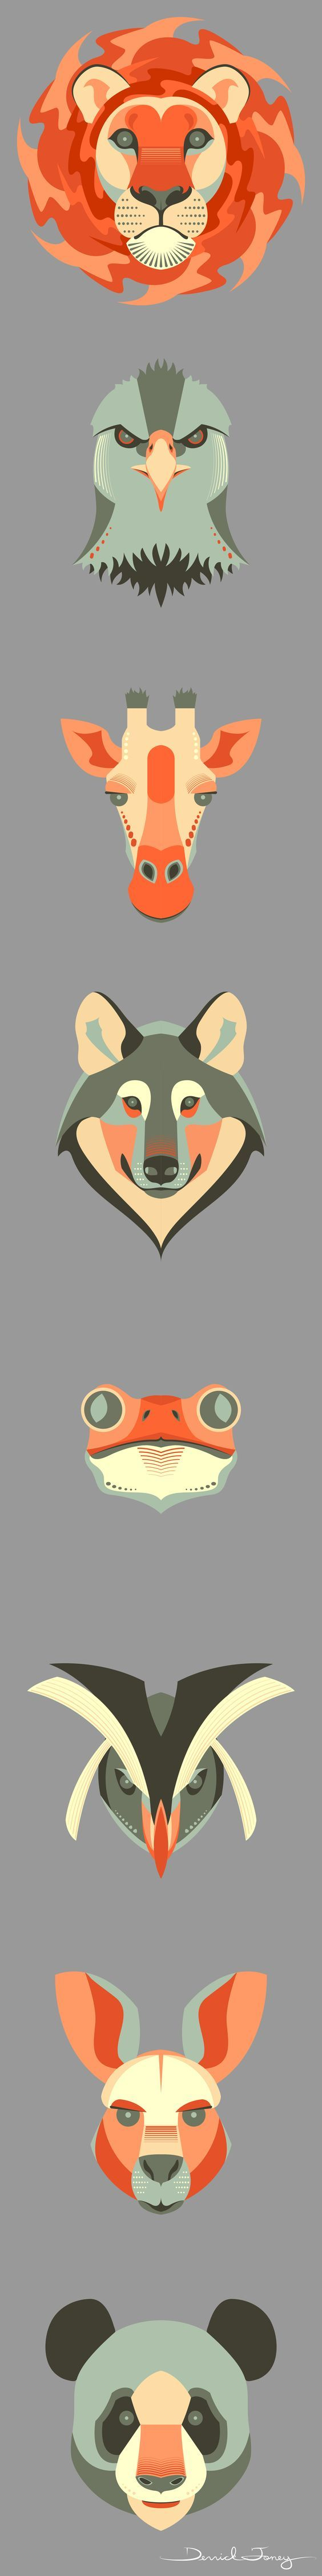 Animals I illustrated for a graphic design zoo project.